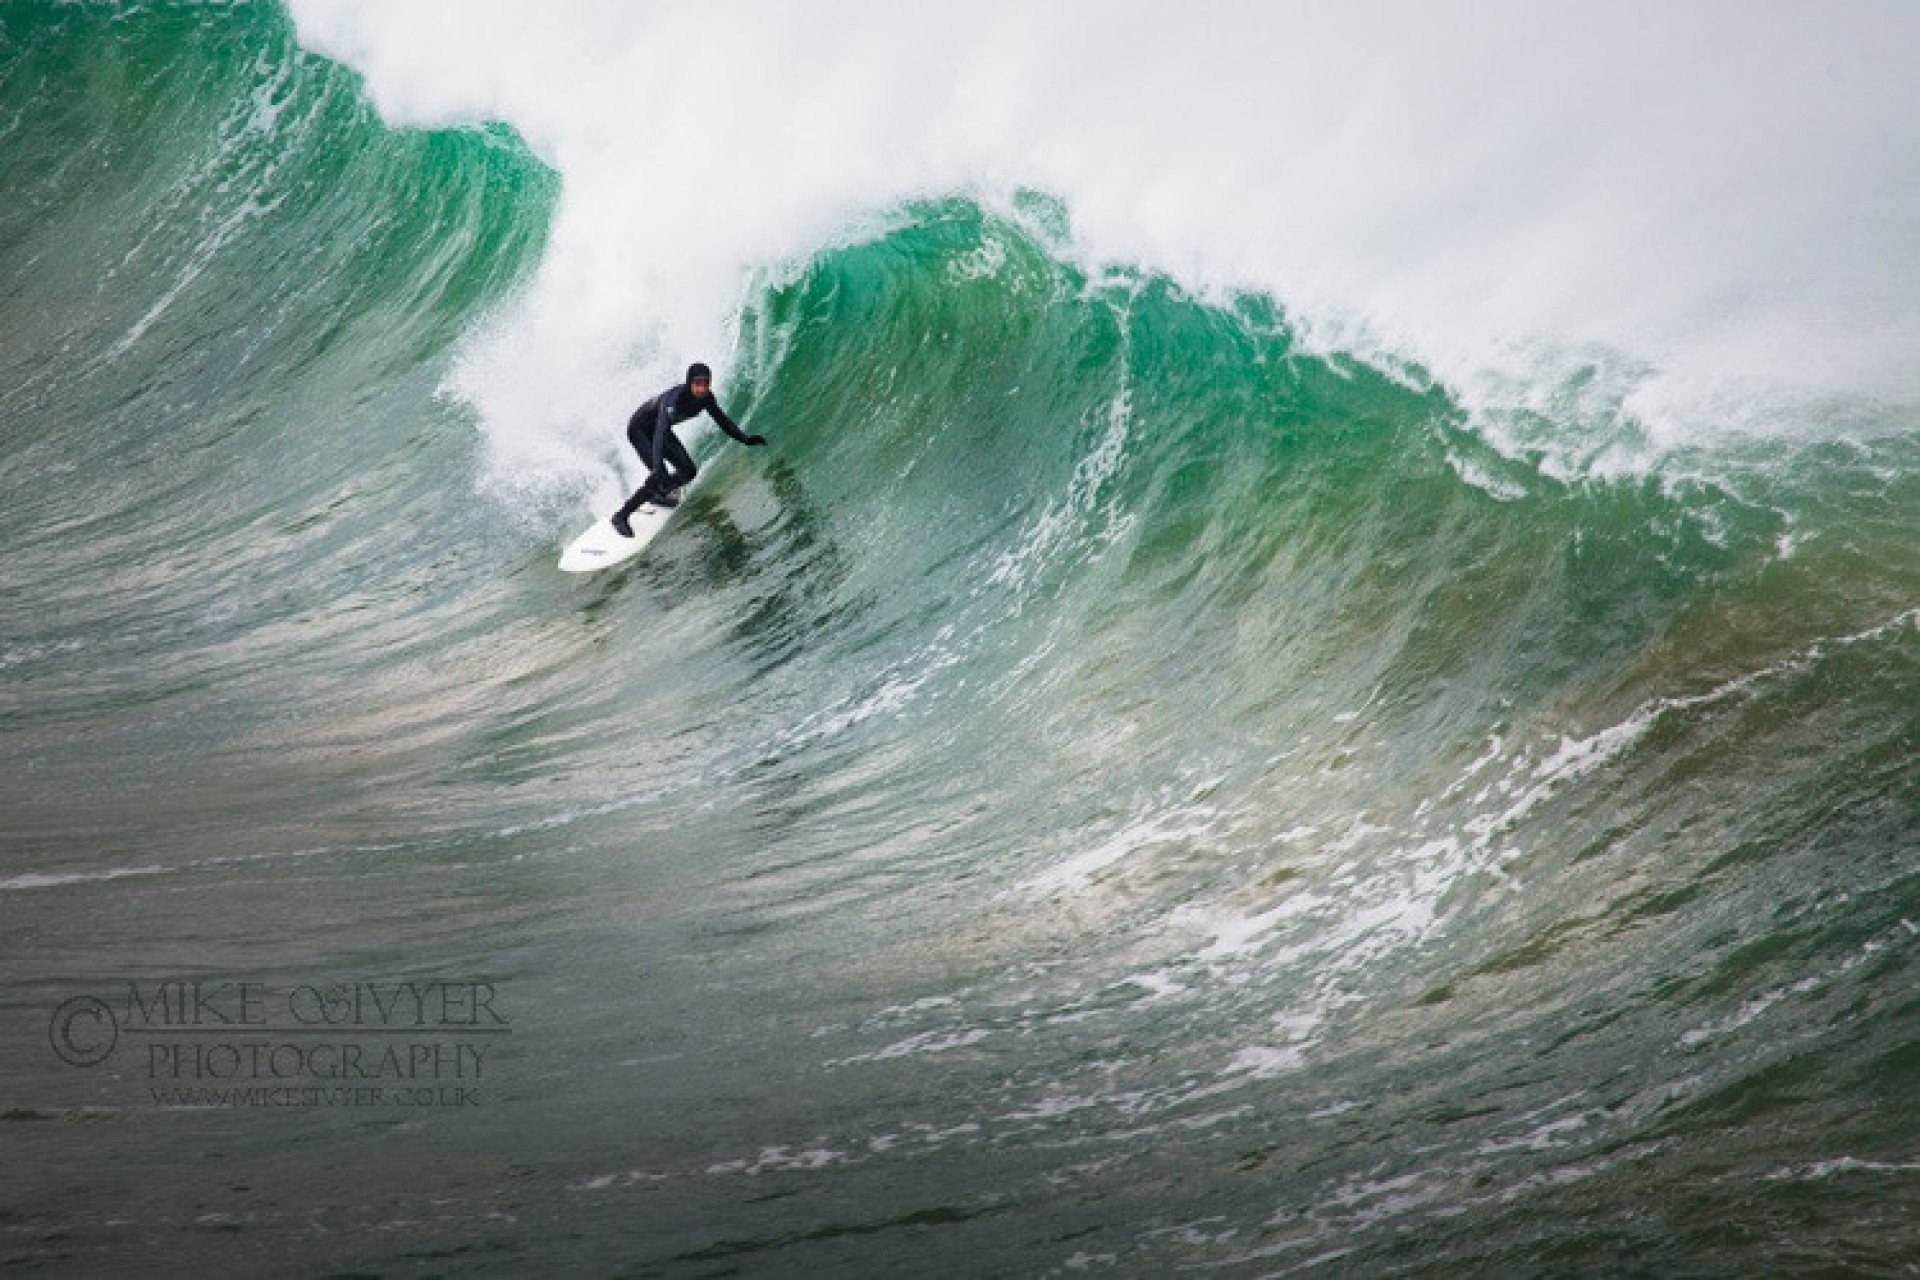 Mike Sivyer's photo of Newquay - Fistral North